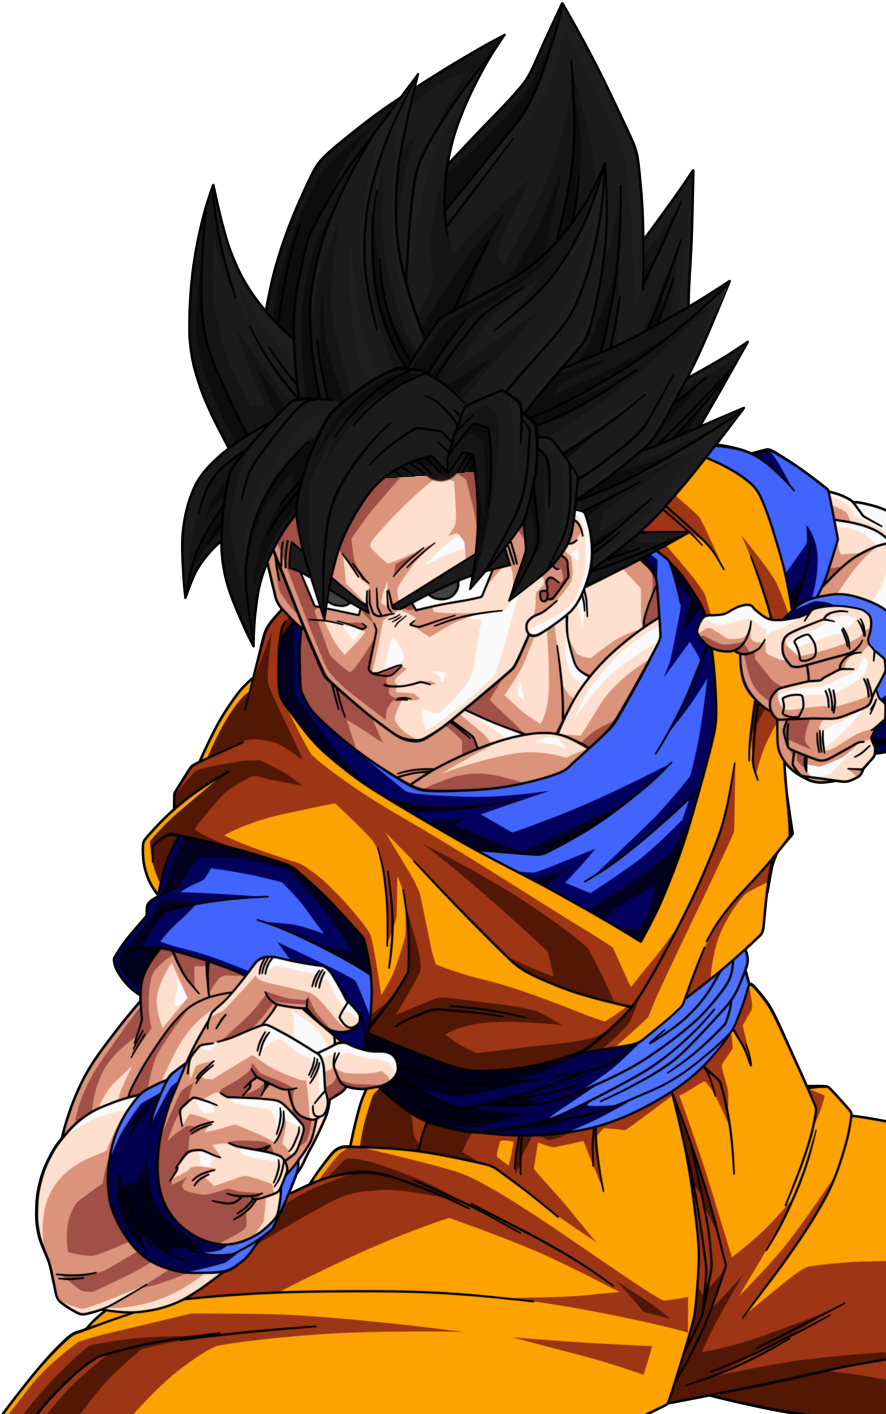 Download Hd Ultra Instinct Should Have Used The Ss Hairstyle And